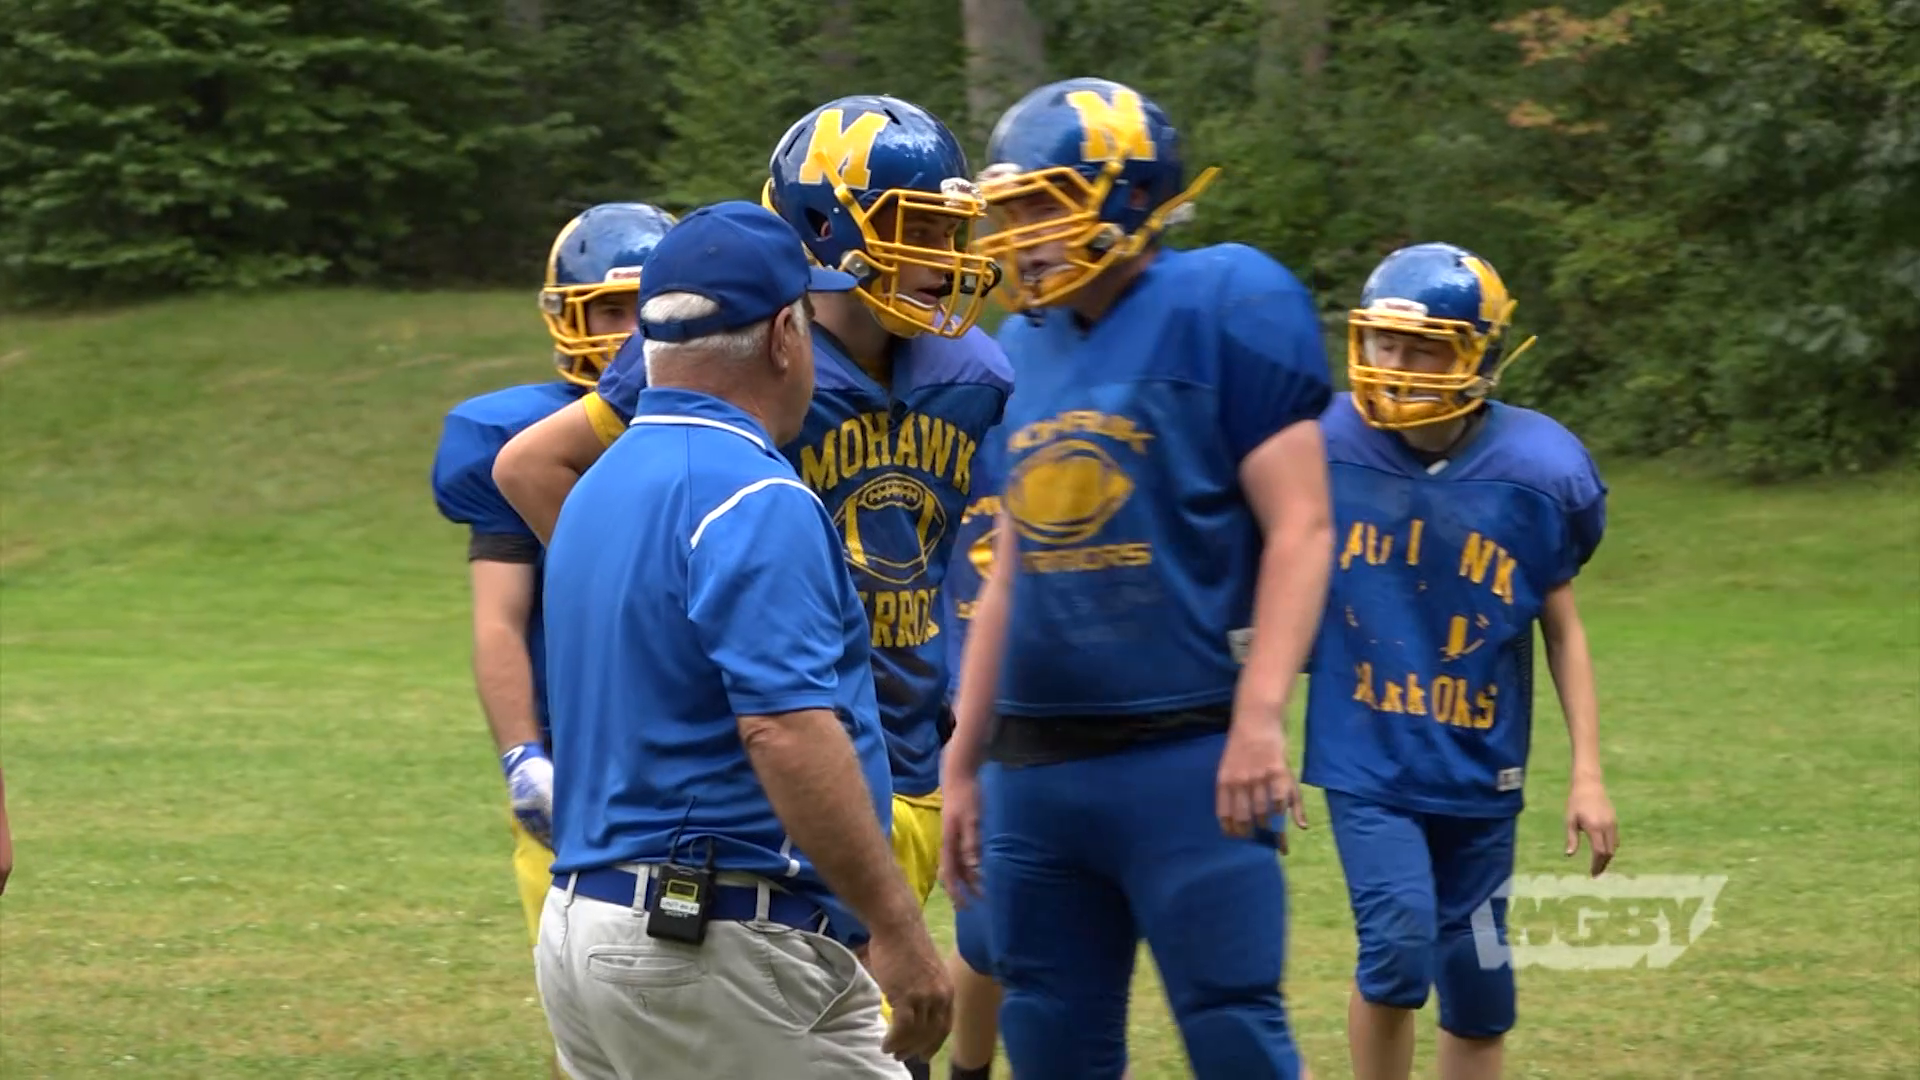 In danger of losing their football teams, Turners Falls High and Mohawk Regional High are fielding a combined team this season.